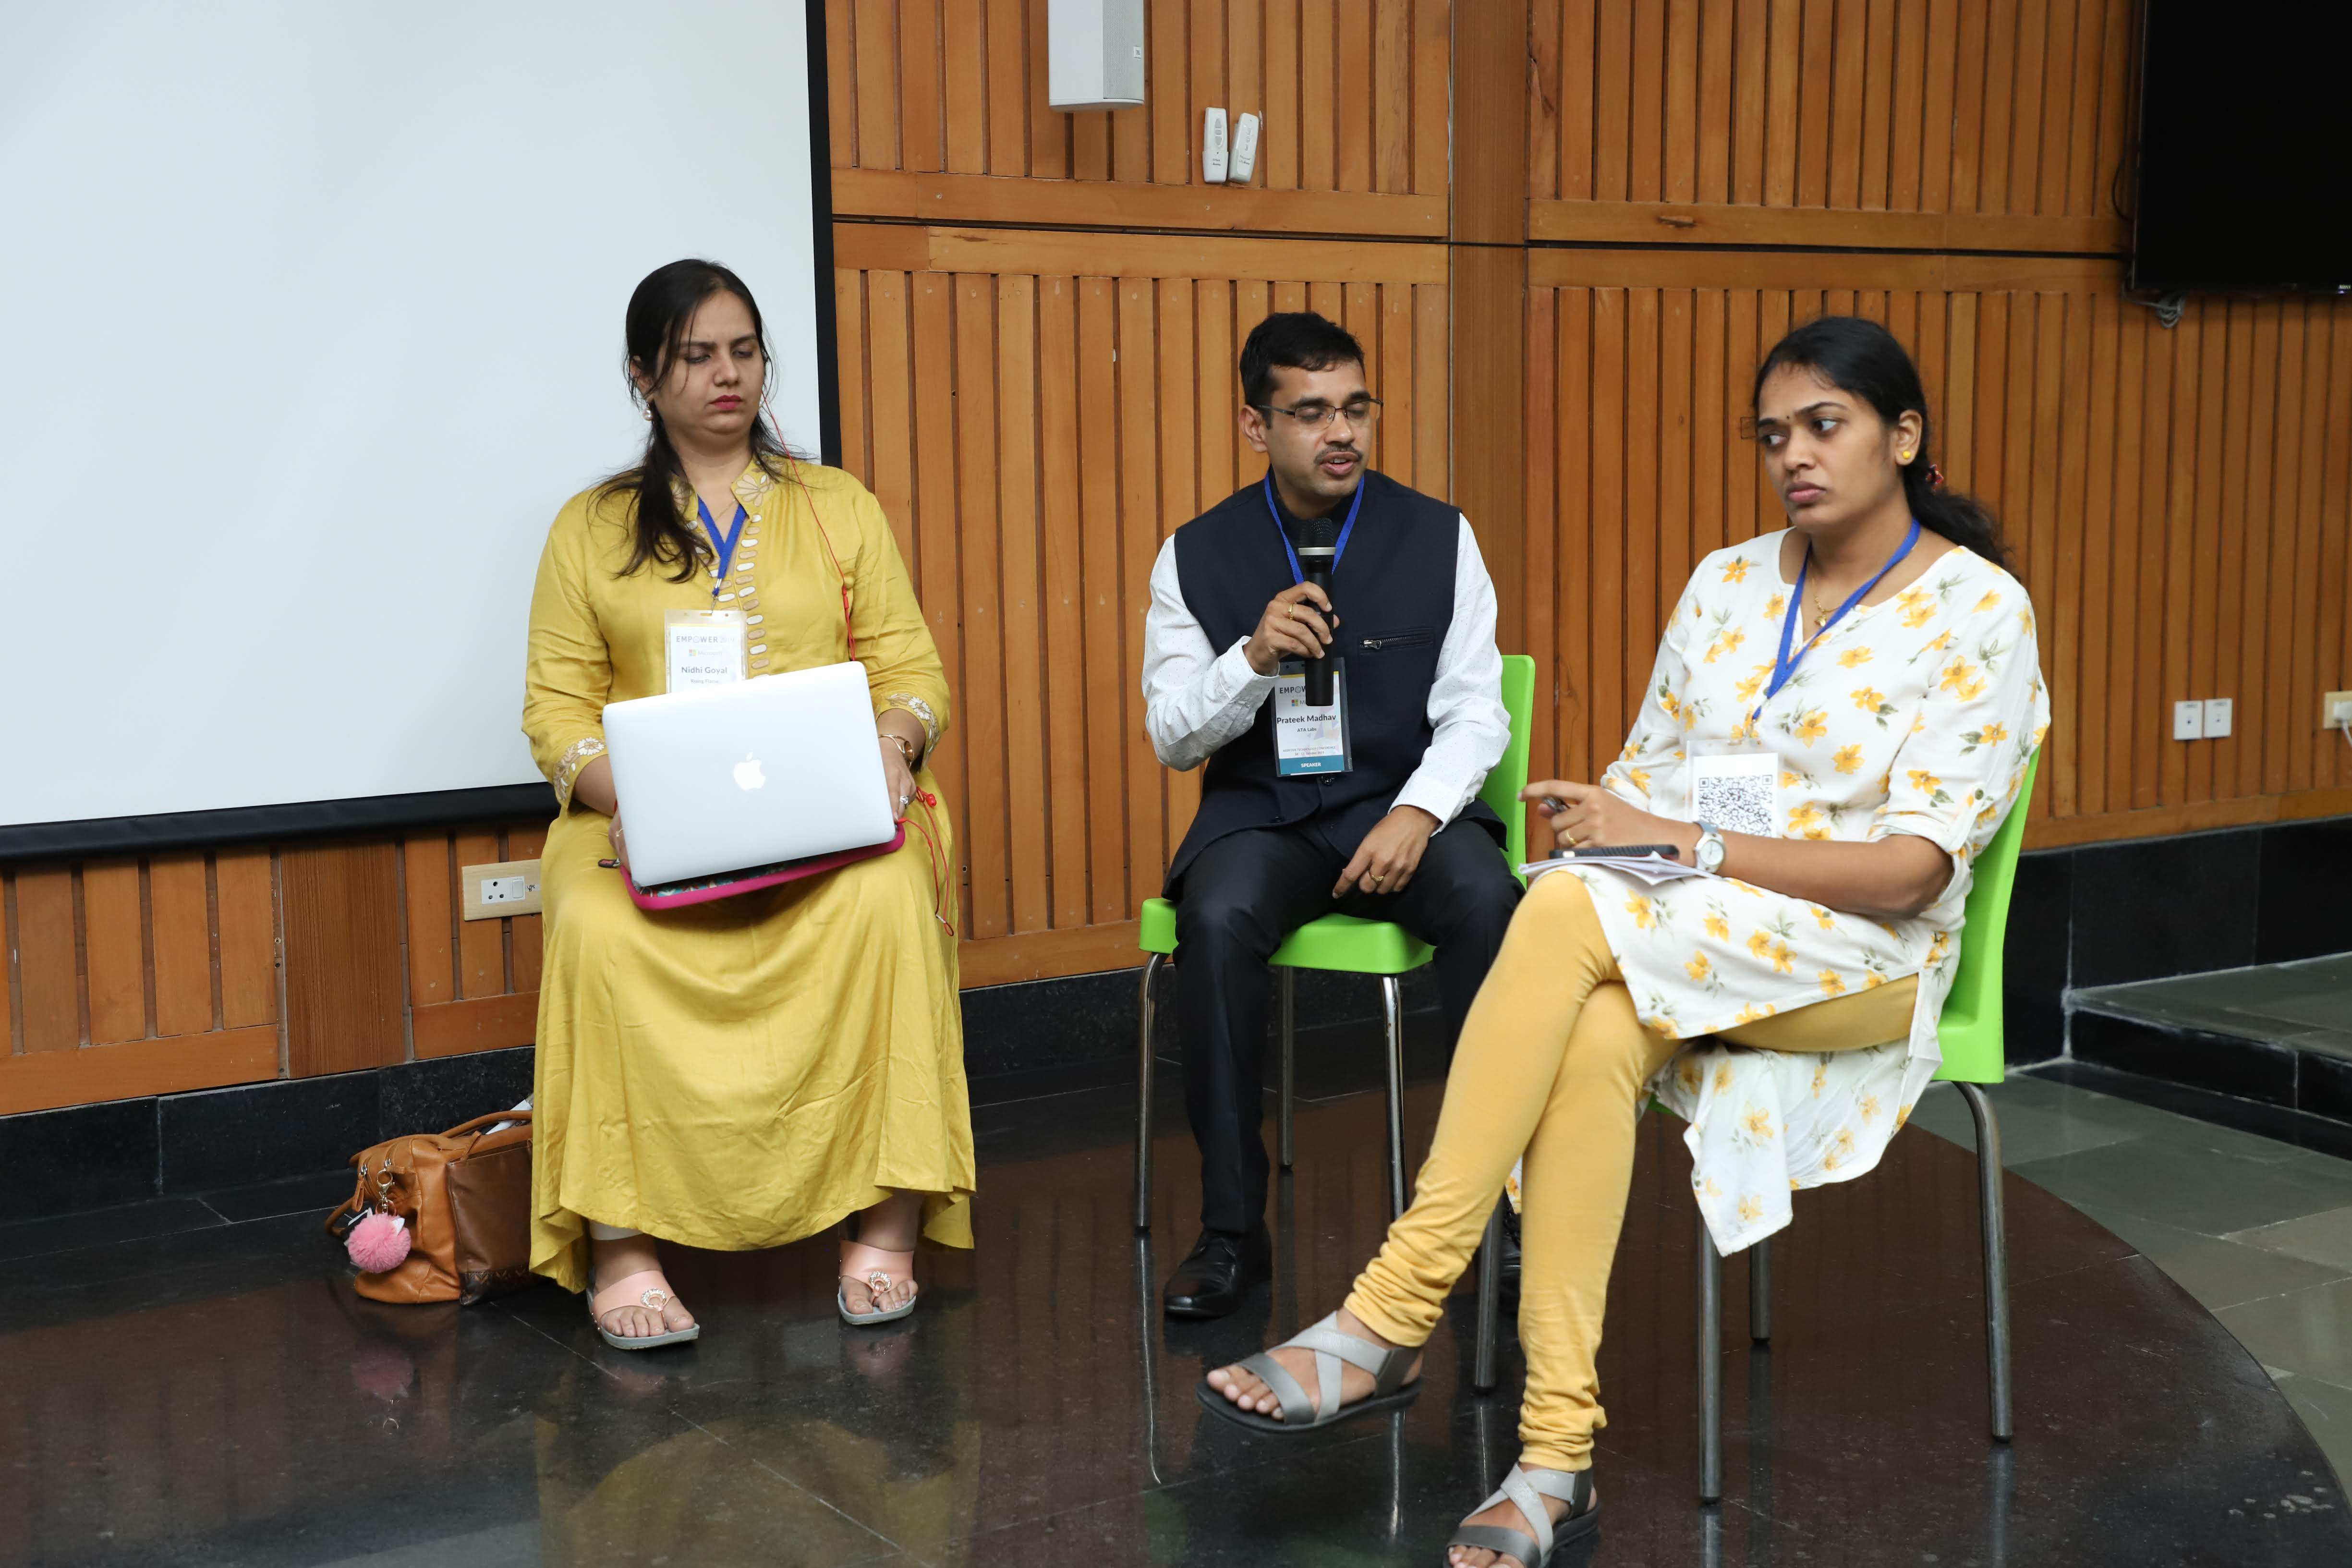 nidhi goyal along with two other panelists at empower 2019 at IIT delhi. the wall has wooden panels and a projector screen